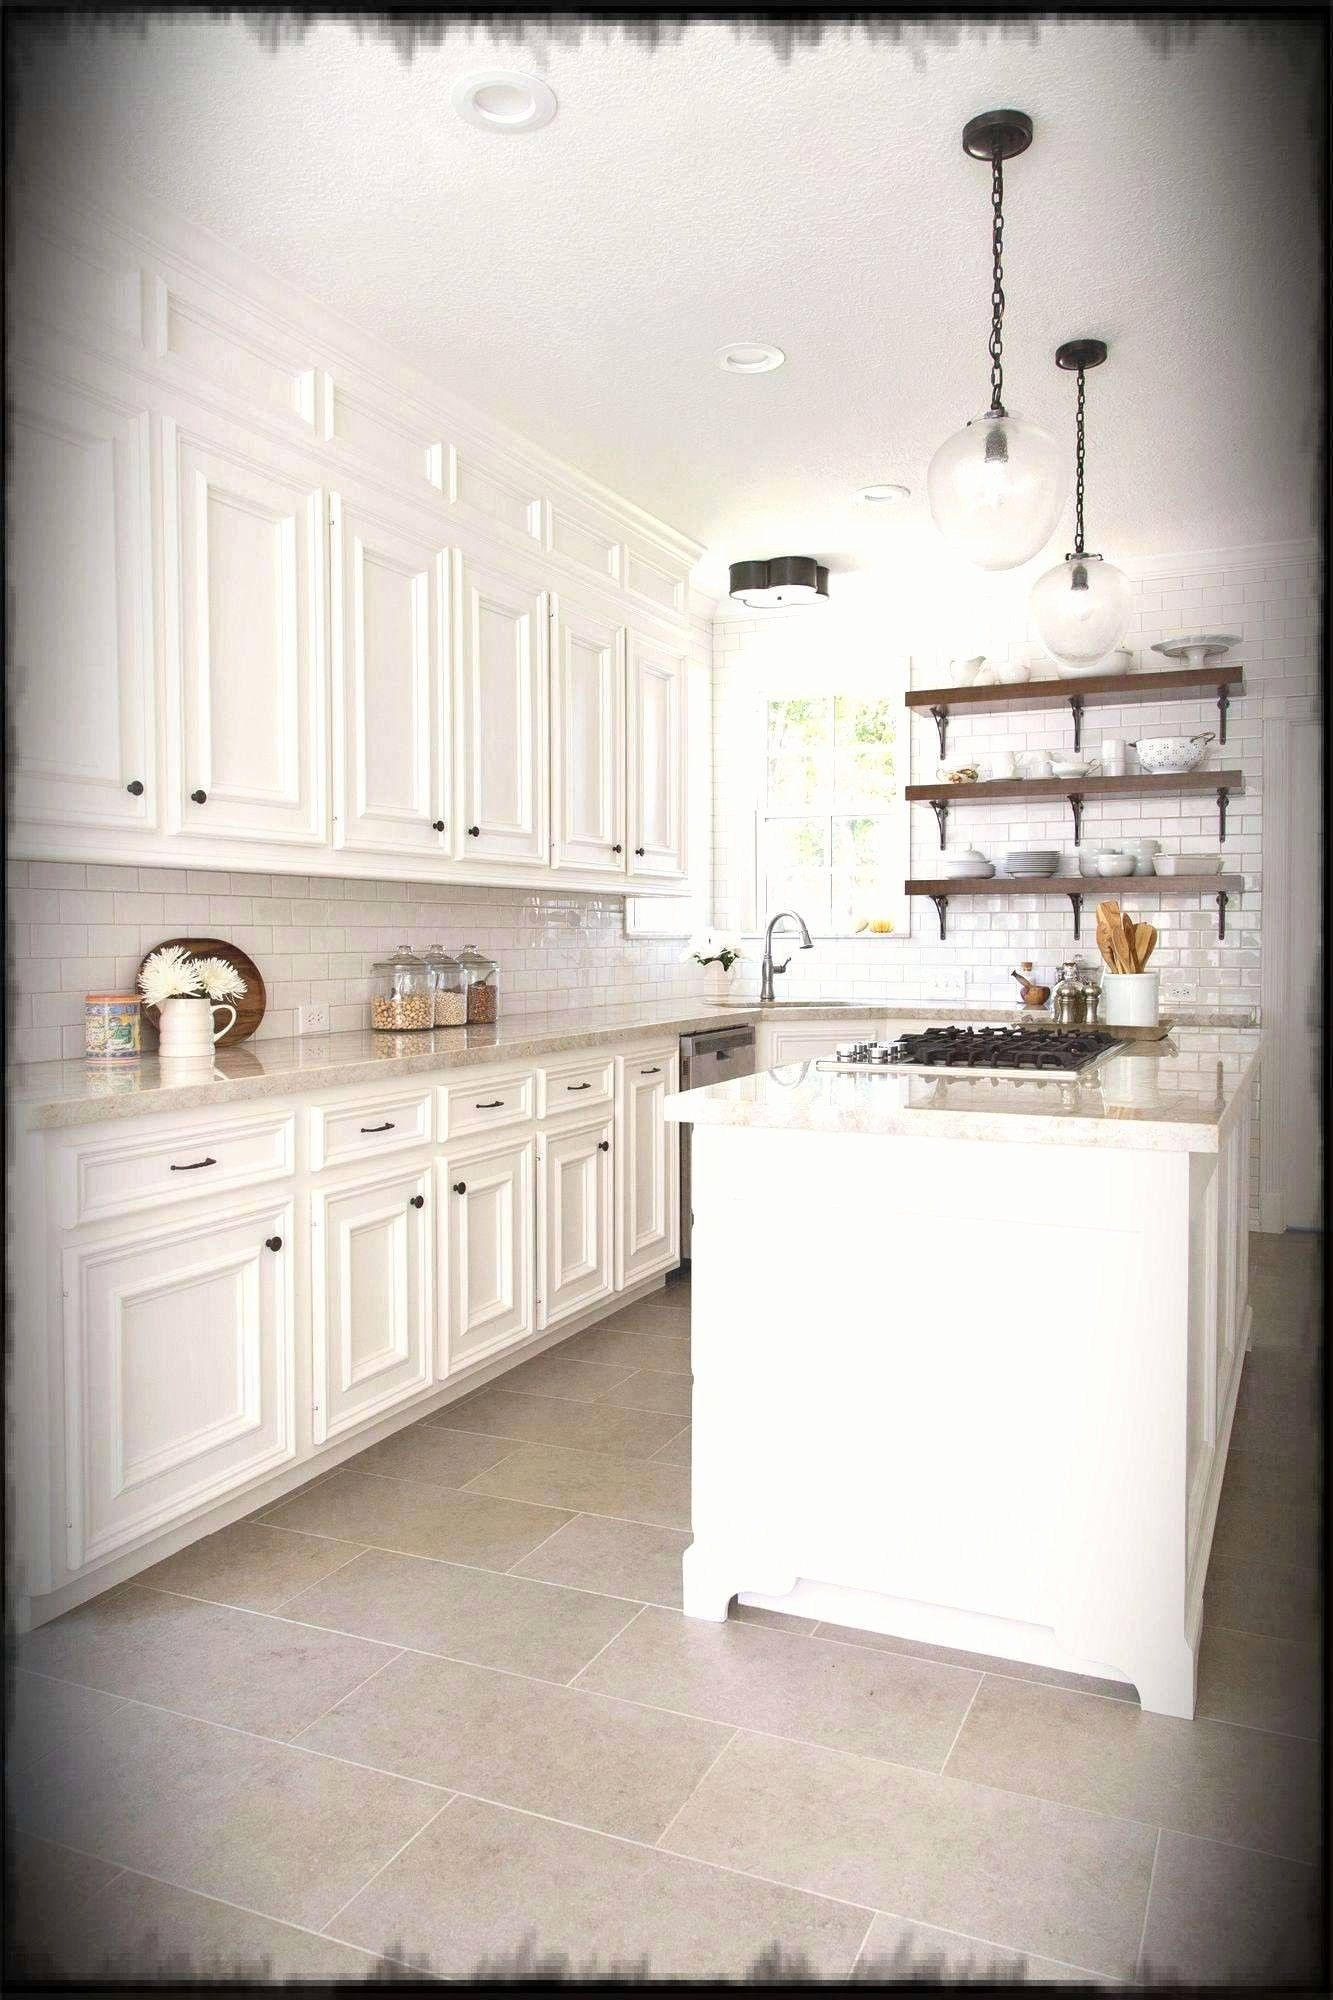 New Kitchen Cabinets San Jose The Most Brilliant And Gorgeous Kitchen Cabinets San Jose Regarding Inspire You Renovasi Dapur Kecil Desain Dapur Lantai Dapur